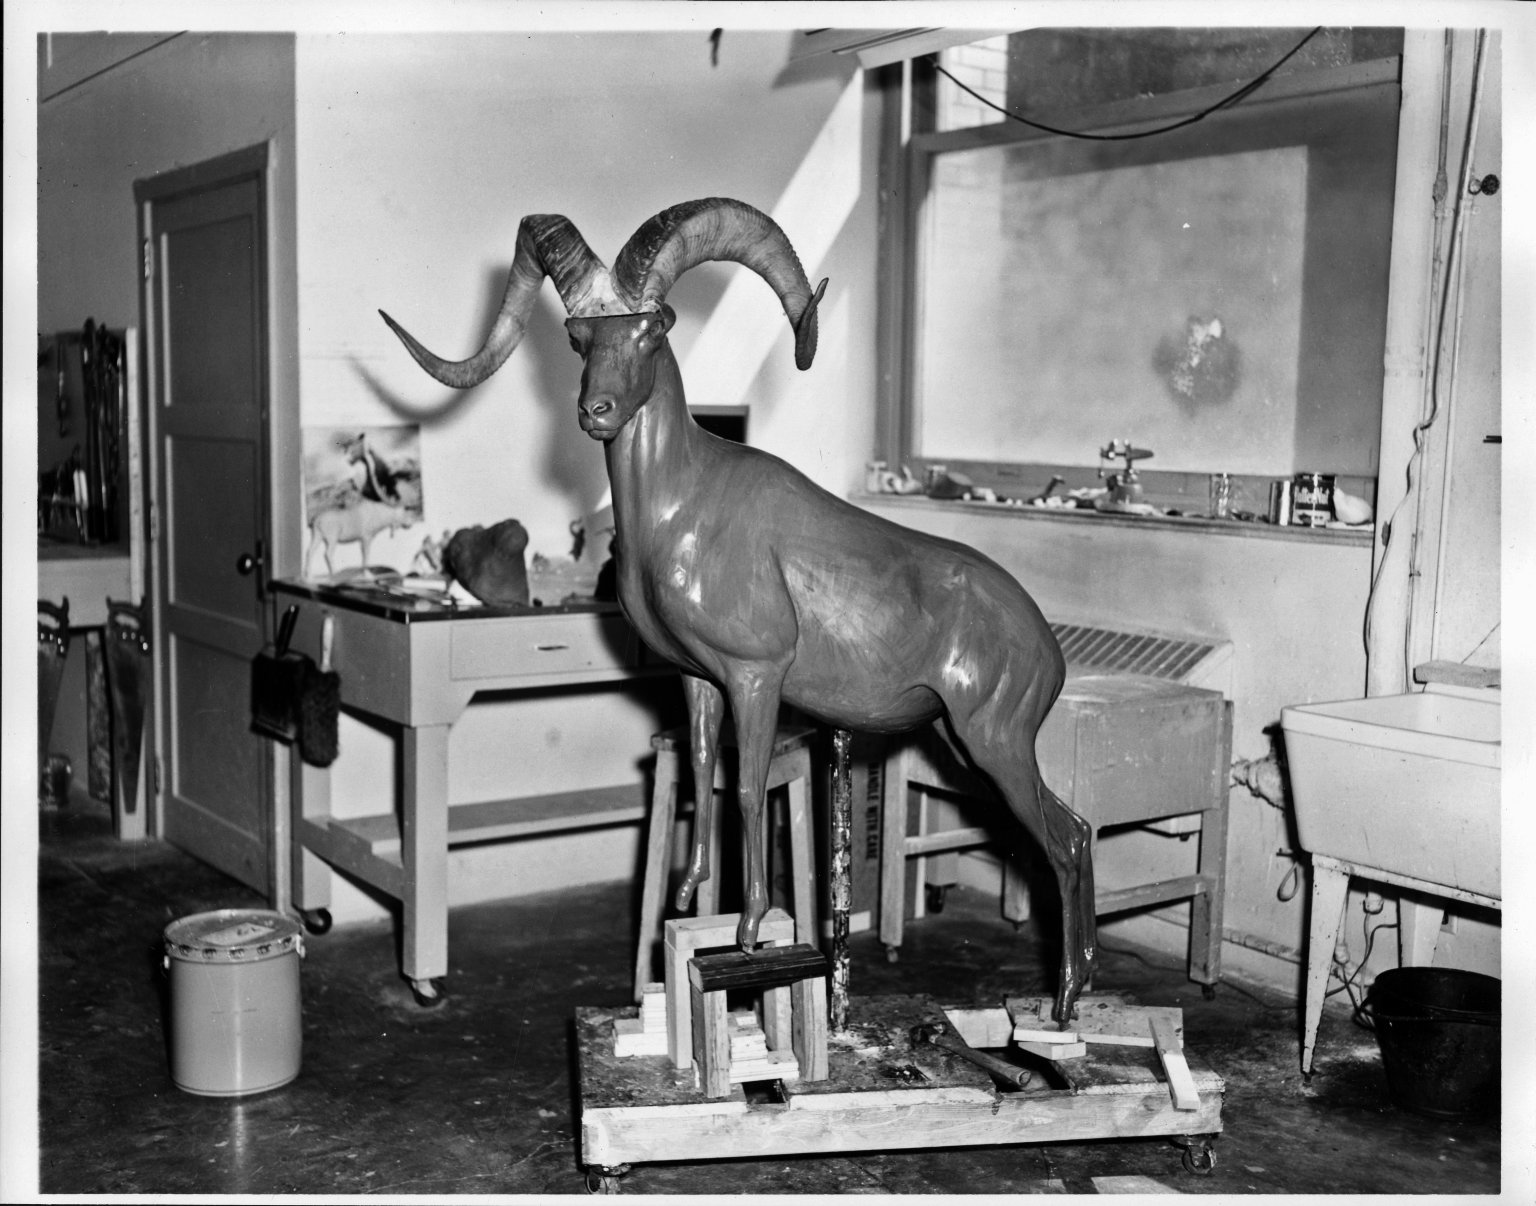 Mount Being Prepared for Big Horn Sheep Exhibit